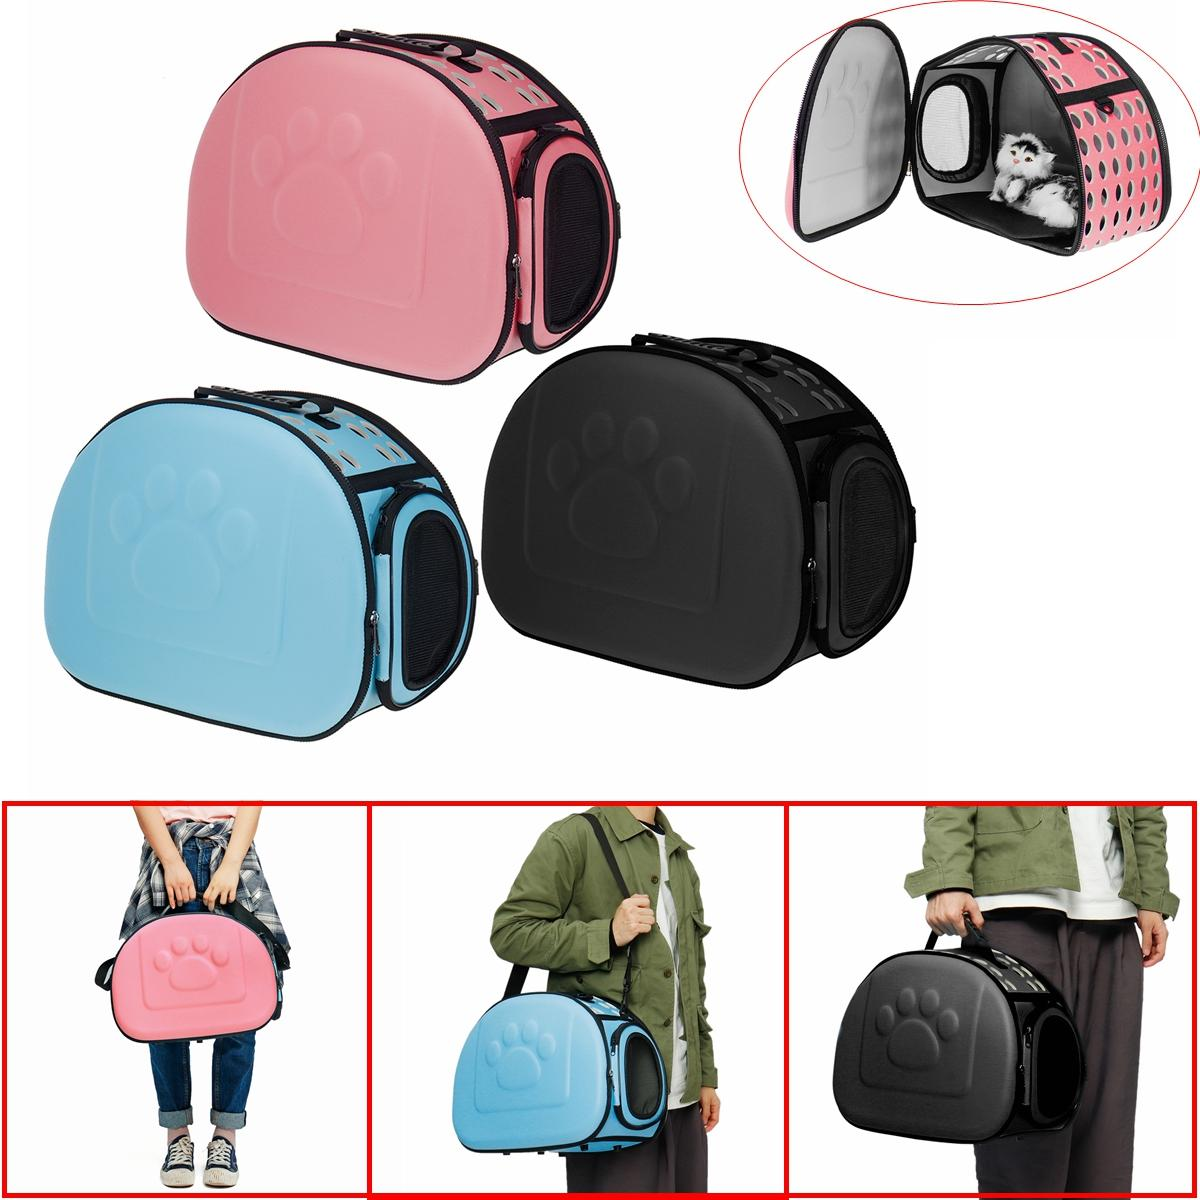 Pet Carrier On Sale Portable Pet Dog Cat Puppy Handbag Portable Travel Carry Carrier Tote Cage Bag Crate Box Holder